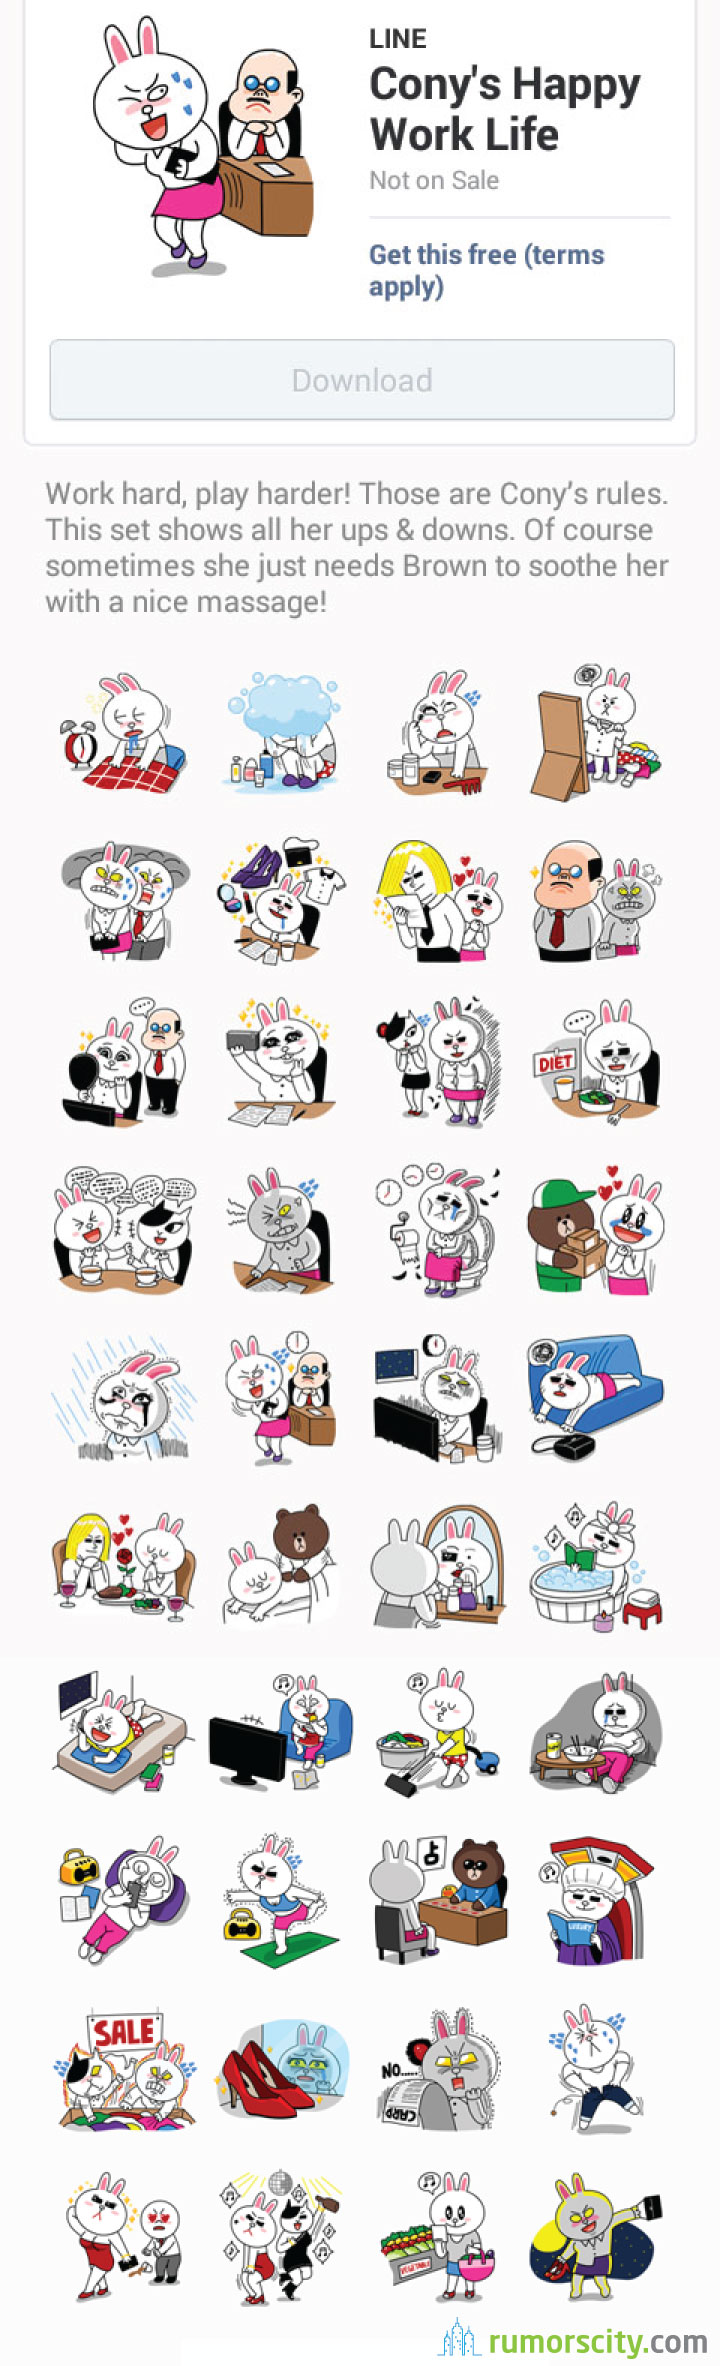 Conys-Happy-Work-Life-Line-sticker-in-Egypt-01